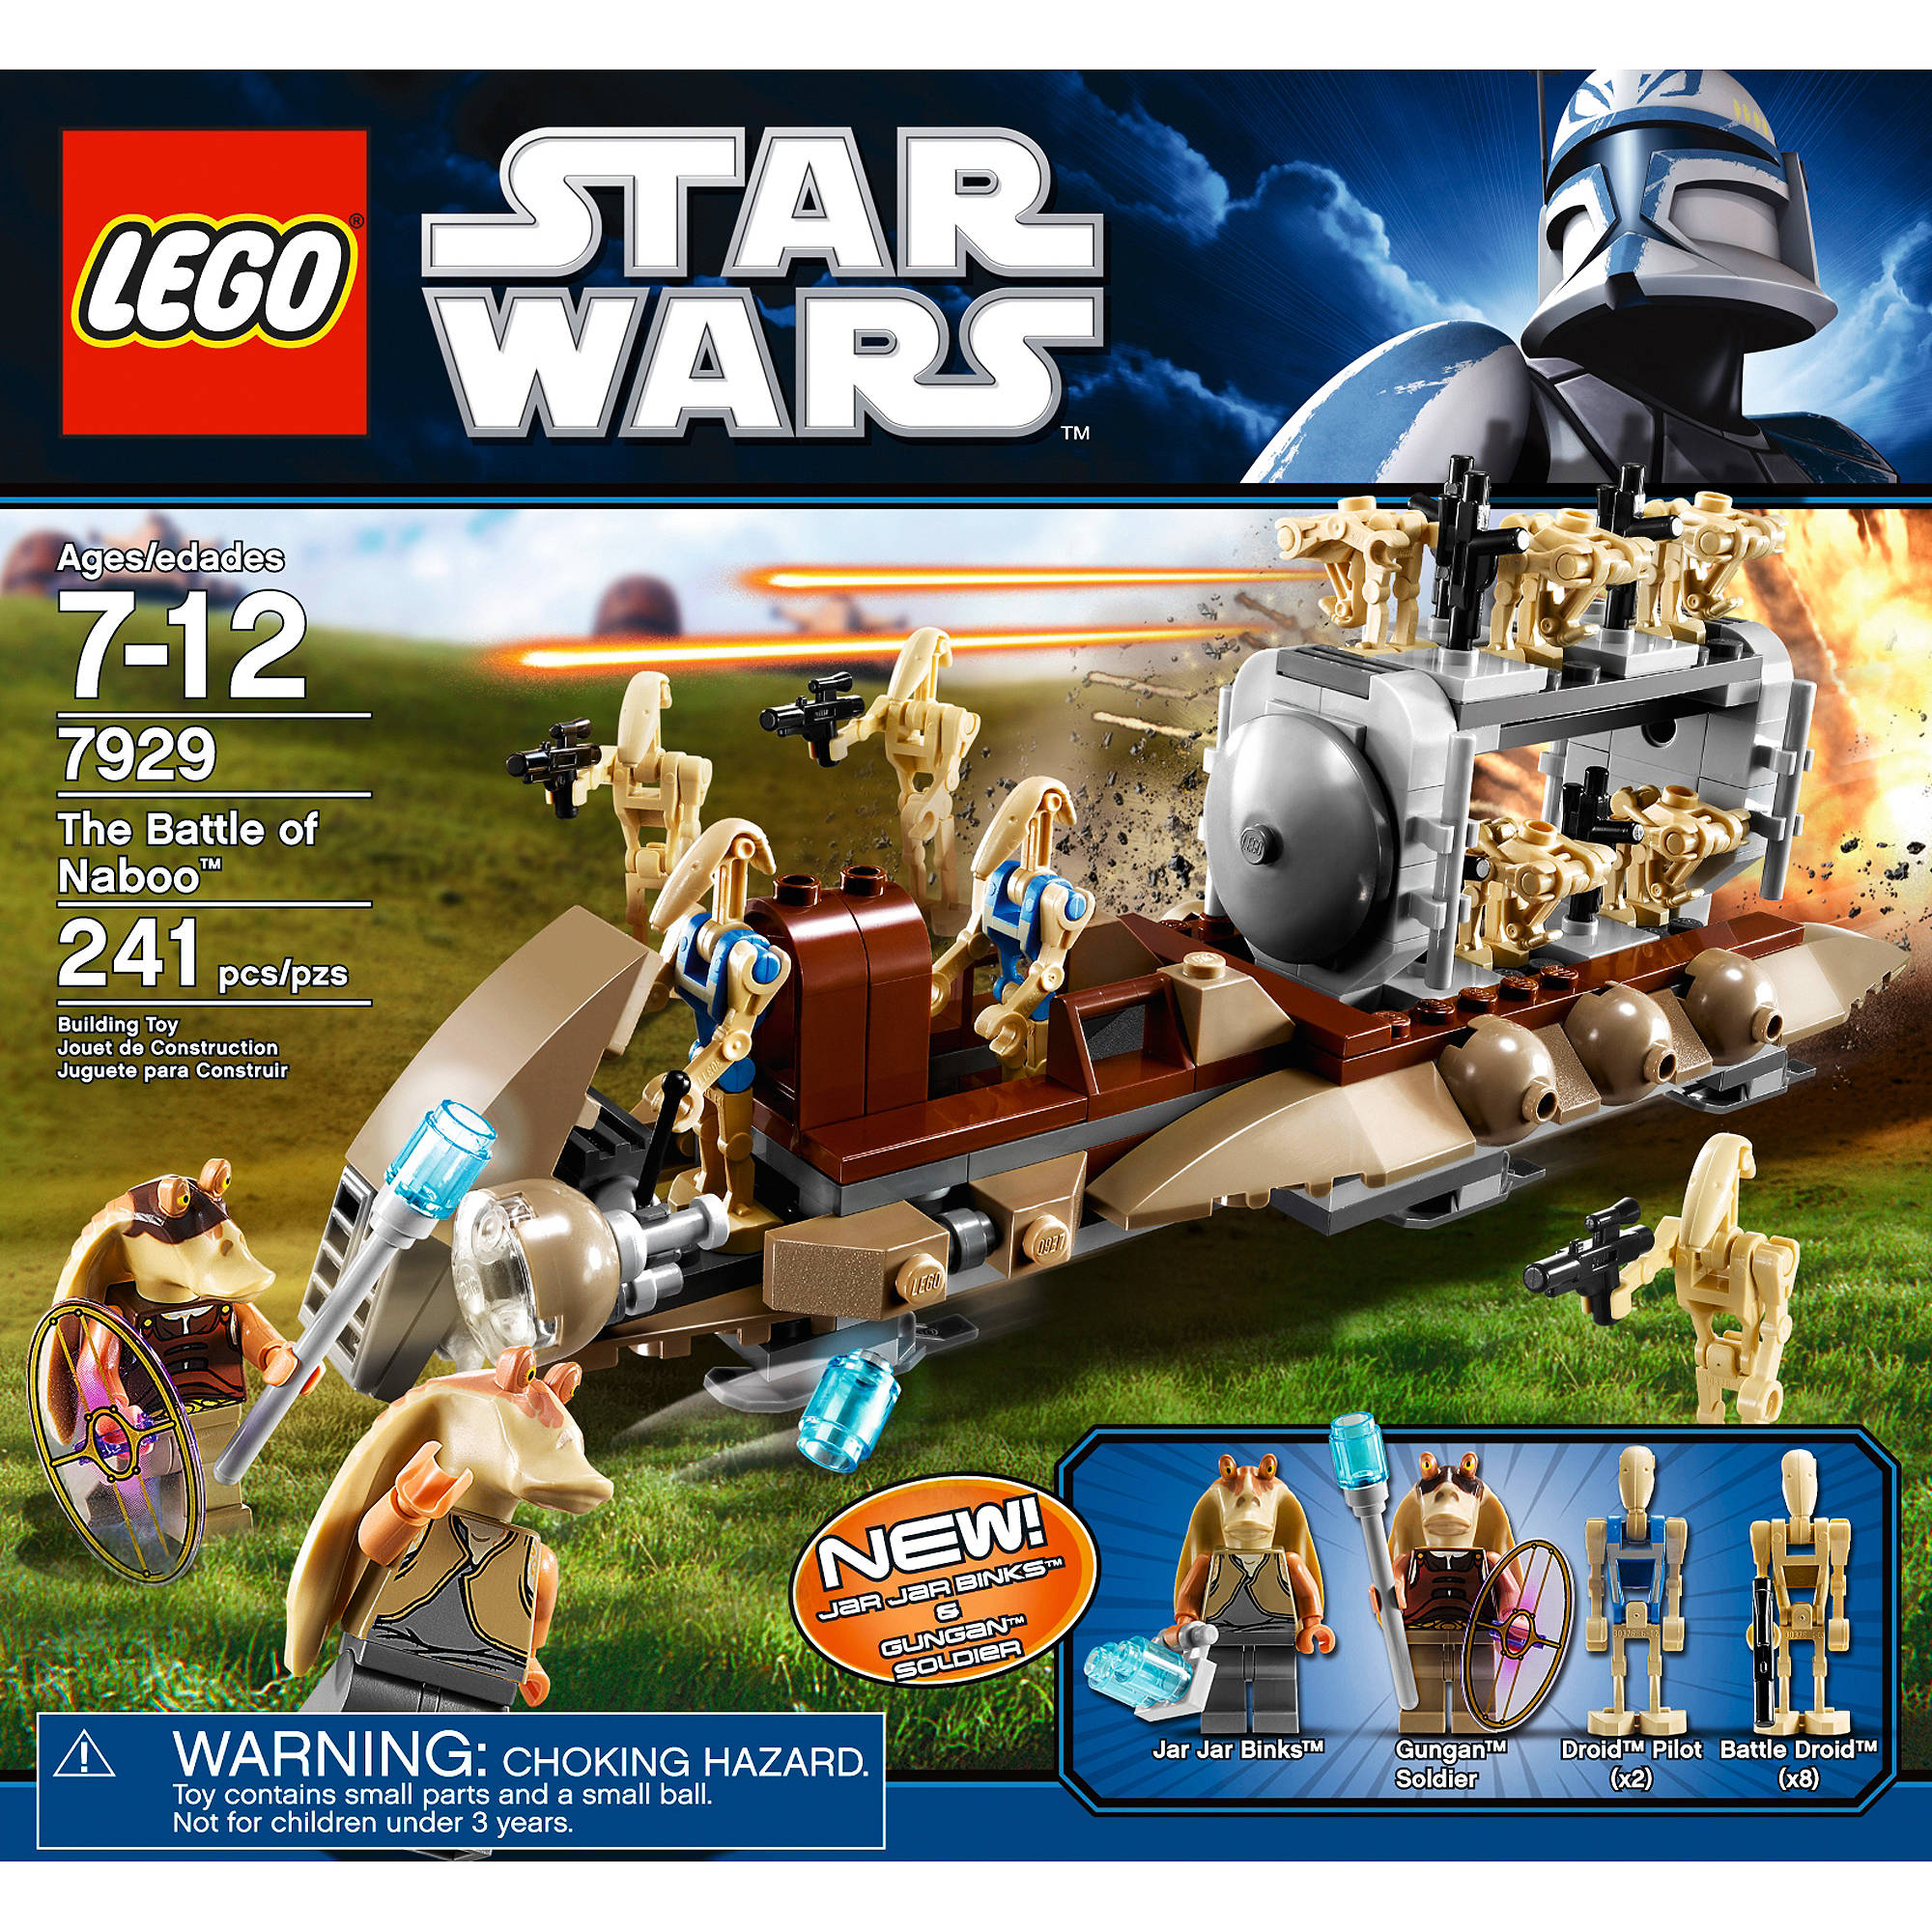 LEGO Star Wars: The Battle of Naboo